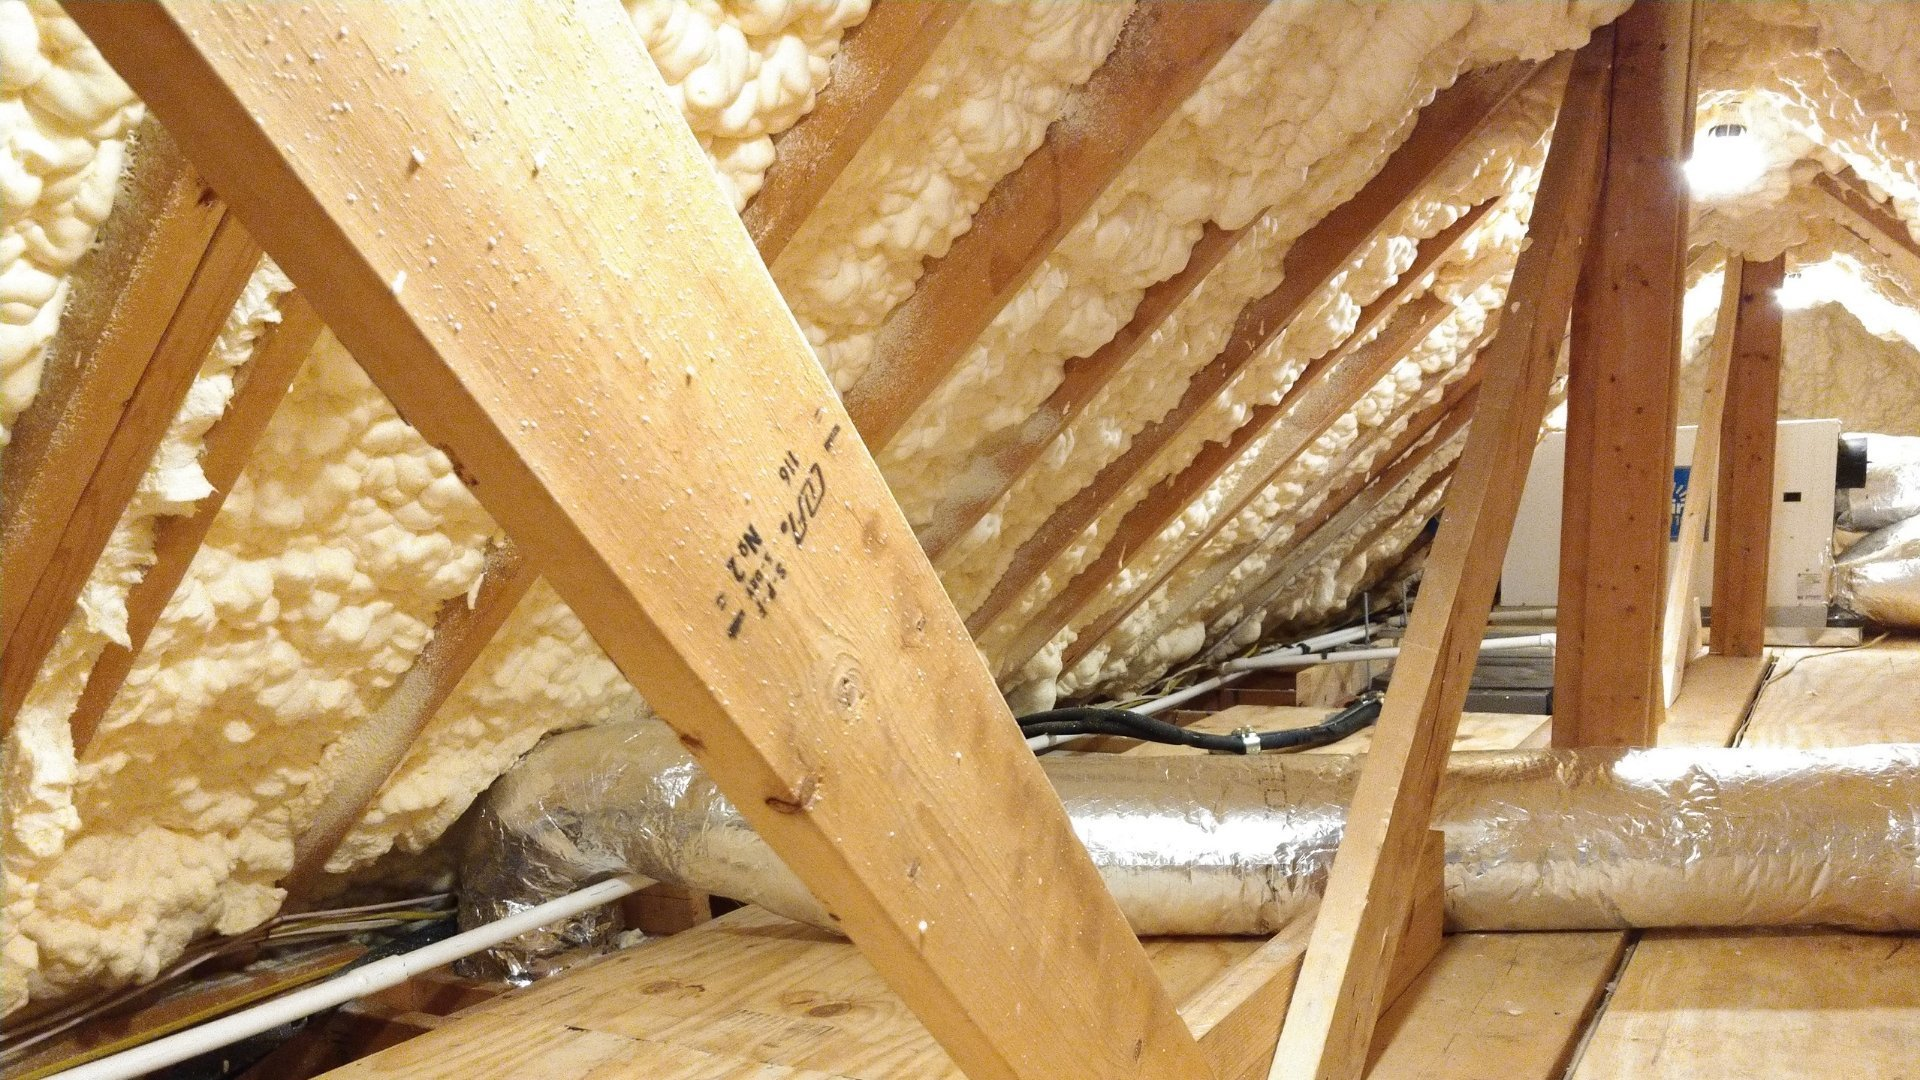 Insulation in Attic Encapsulation - Page Gallery